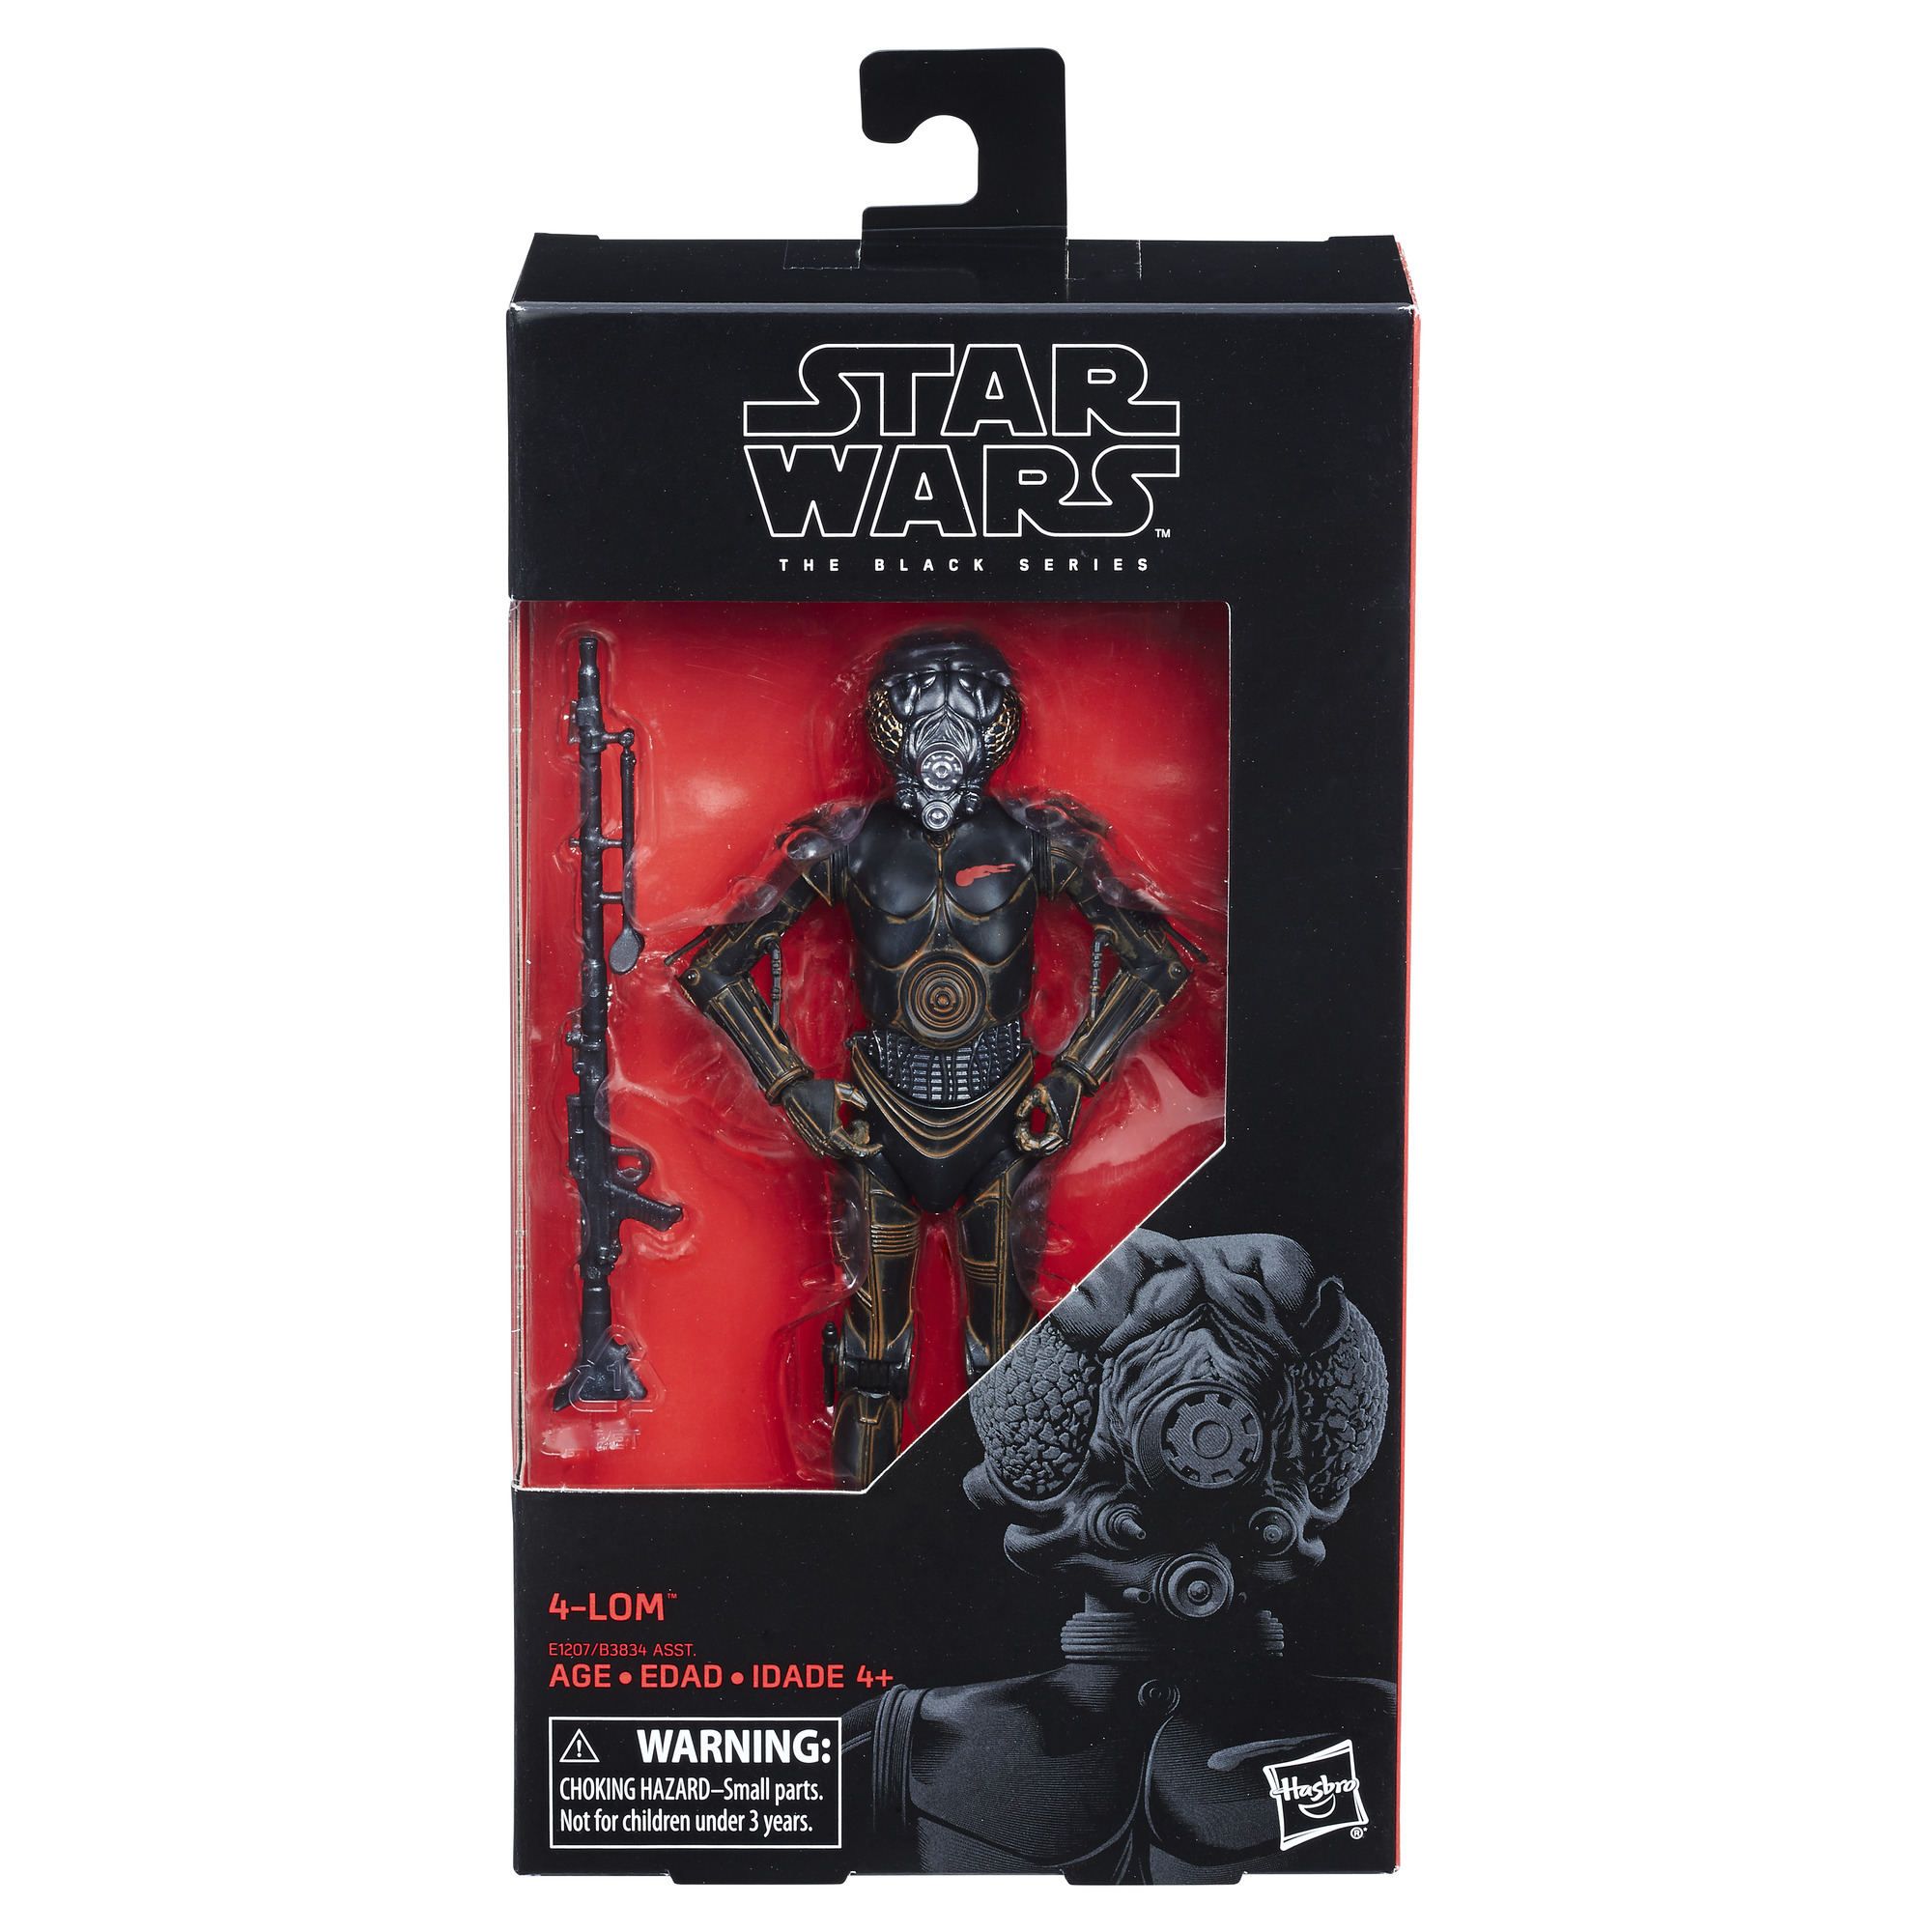 Star Wars The Black Series 6 Inch Action Figure B3834AS6A - 4-Lom #67